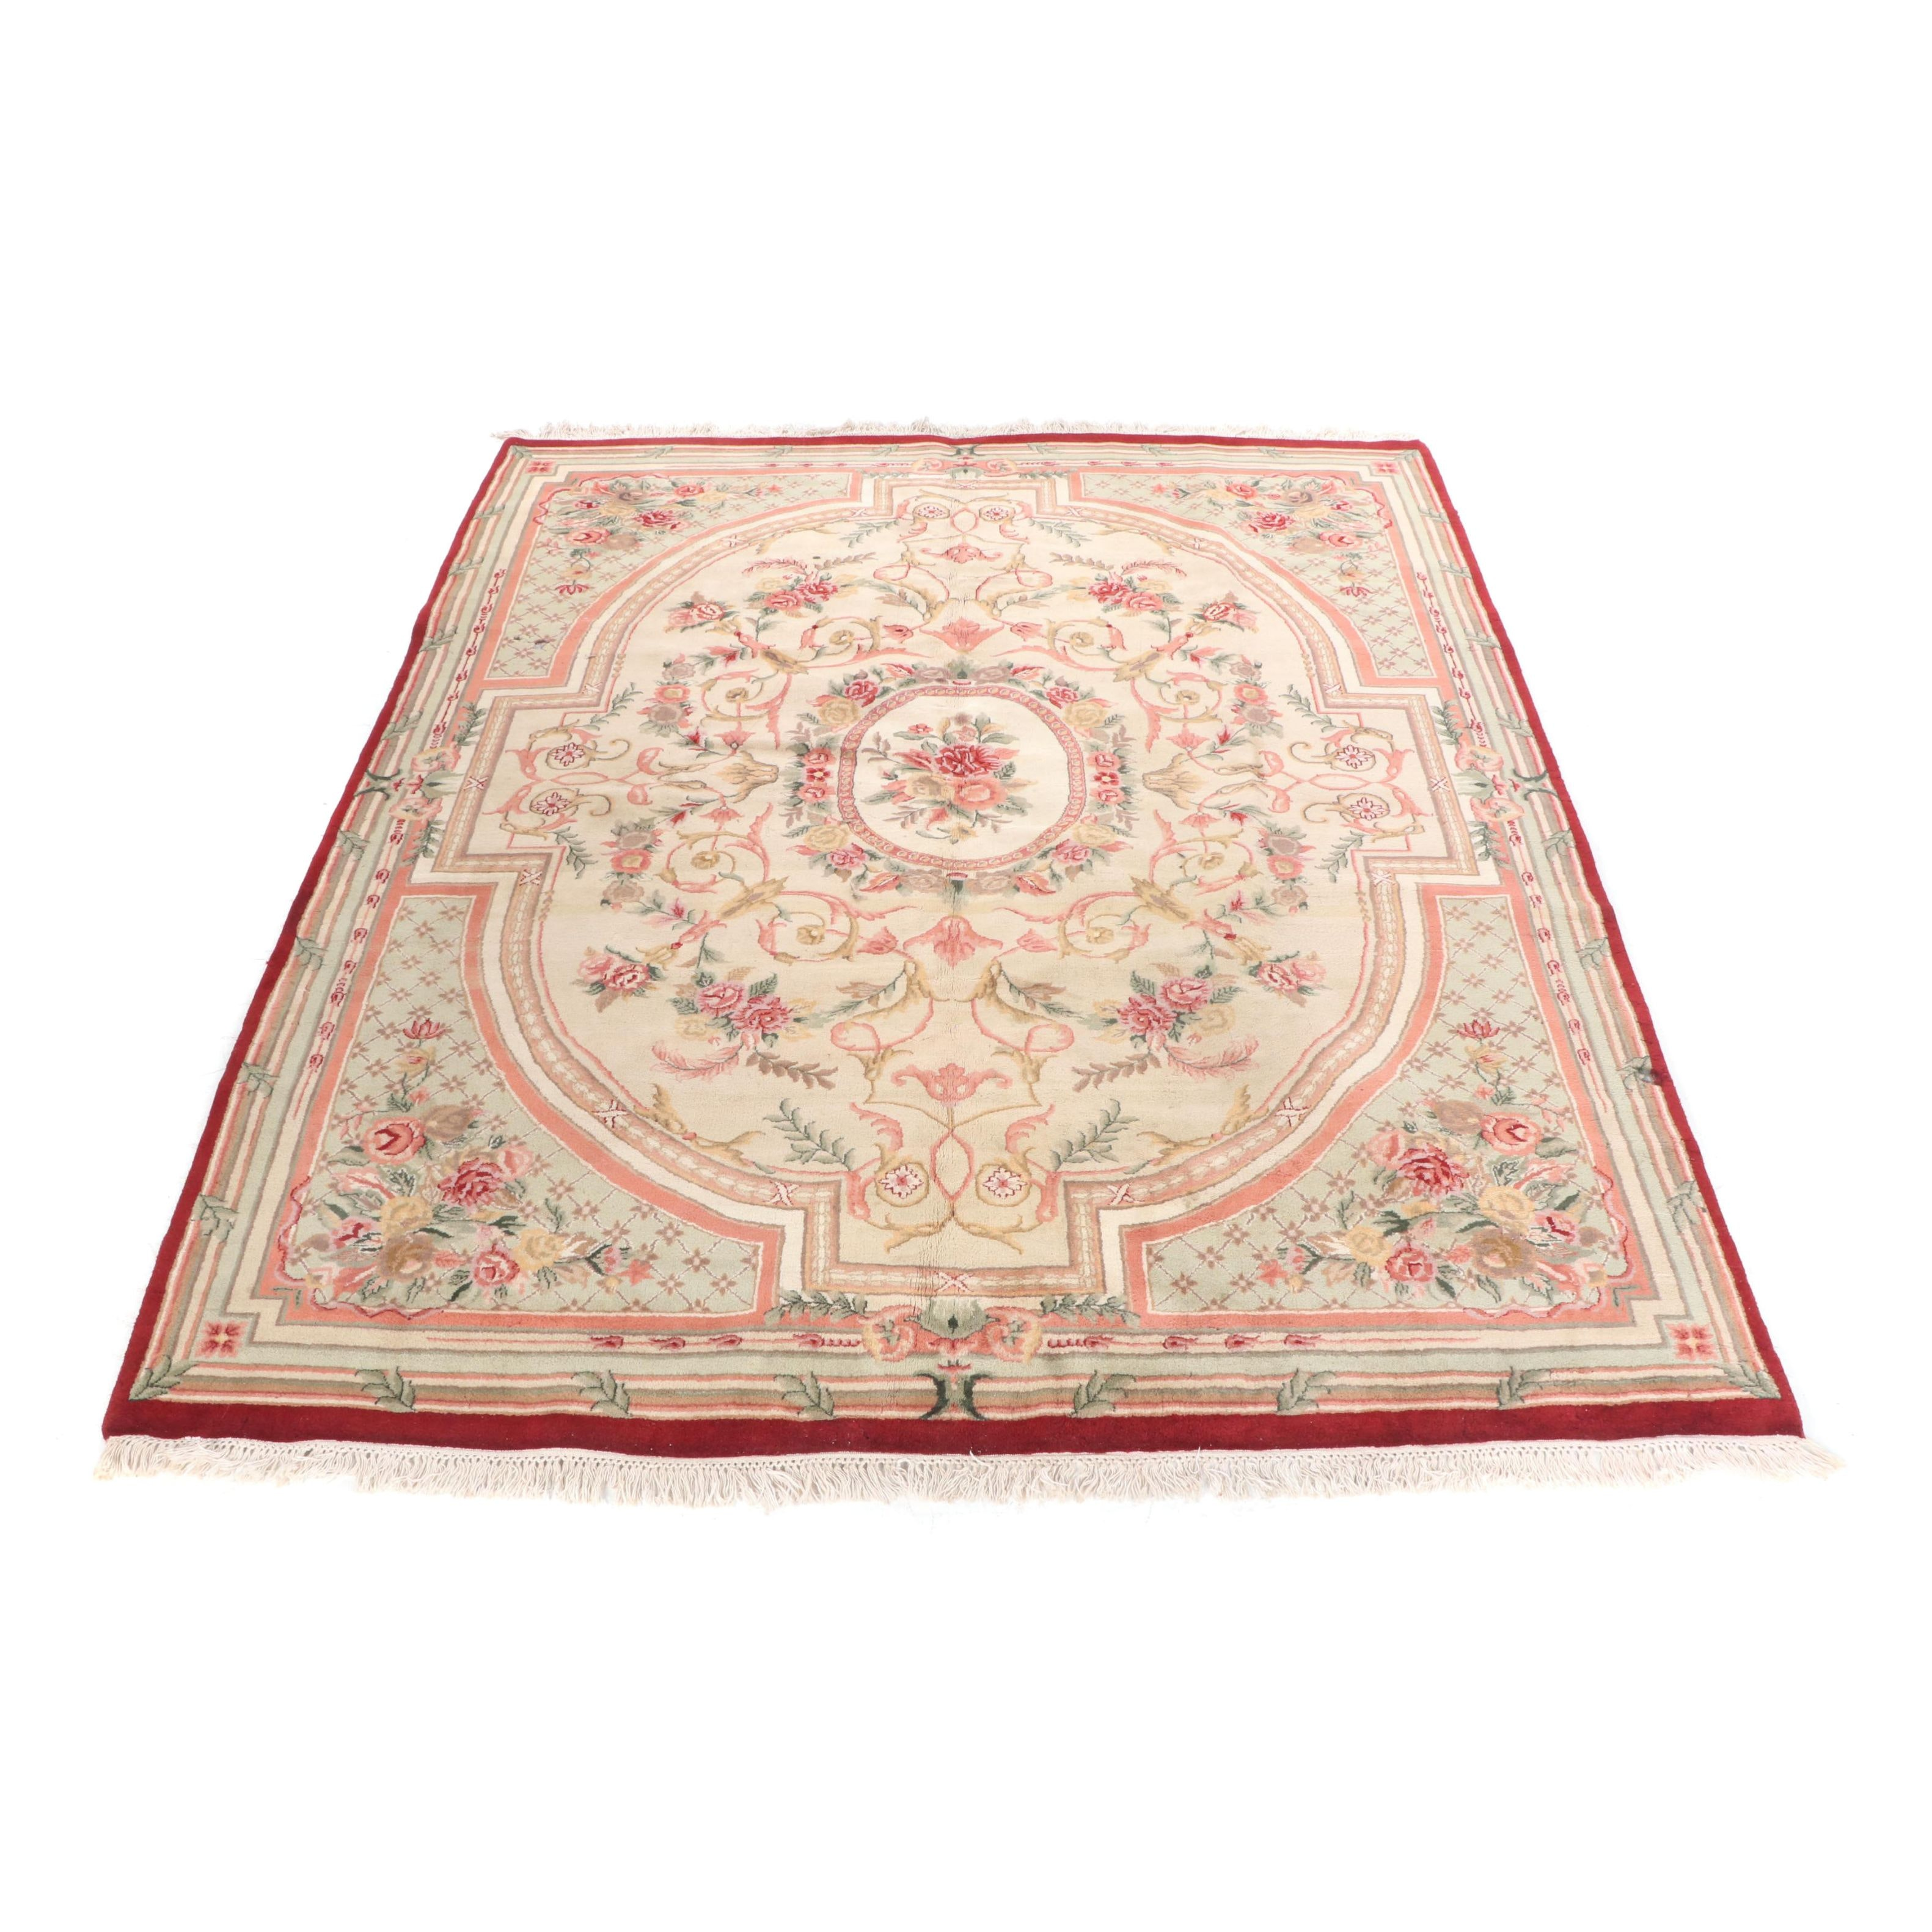 Hand-Knotted Indian Aubusson Wool Rug